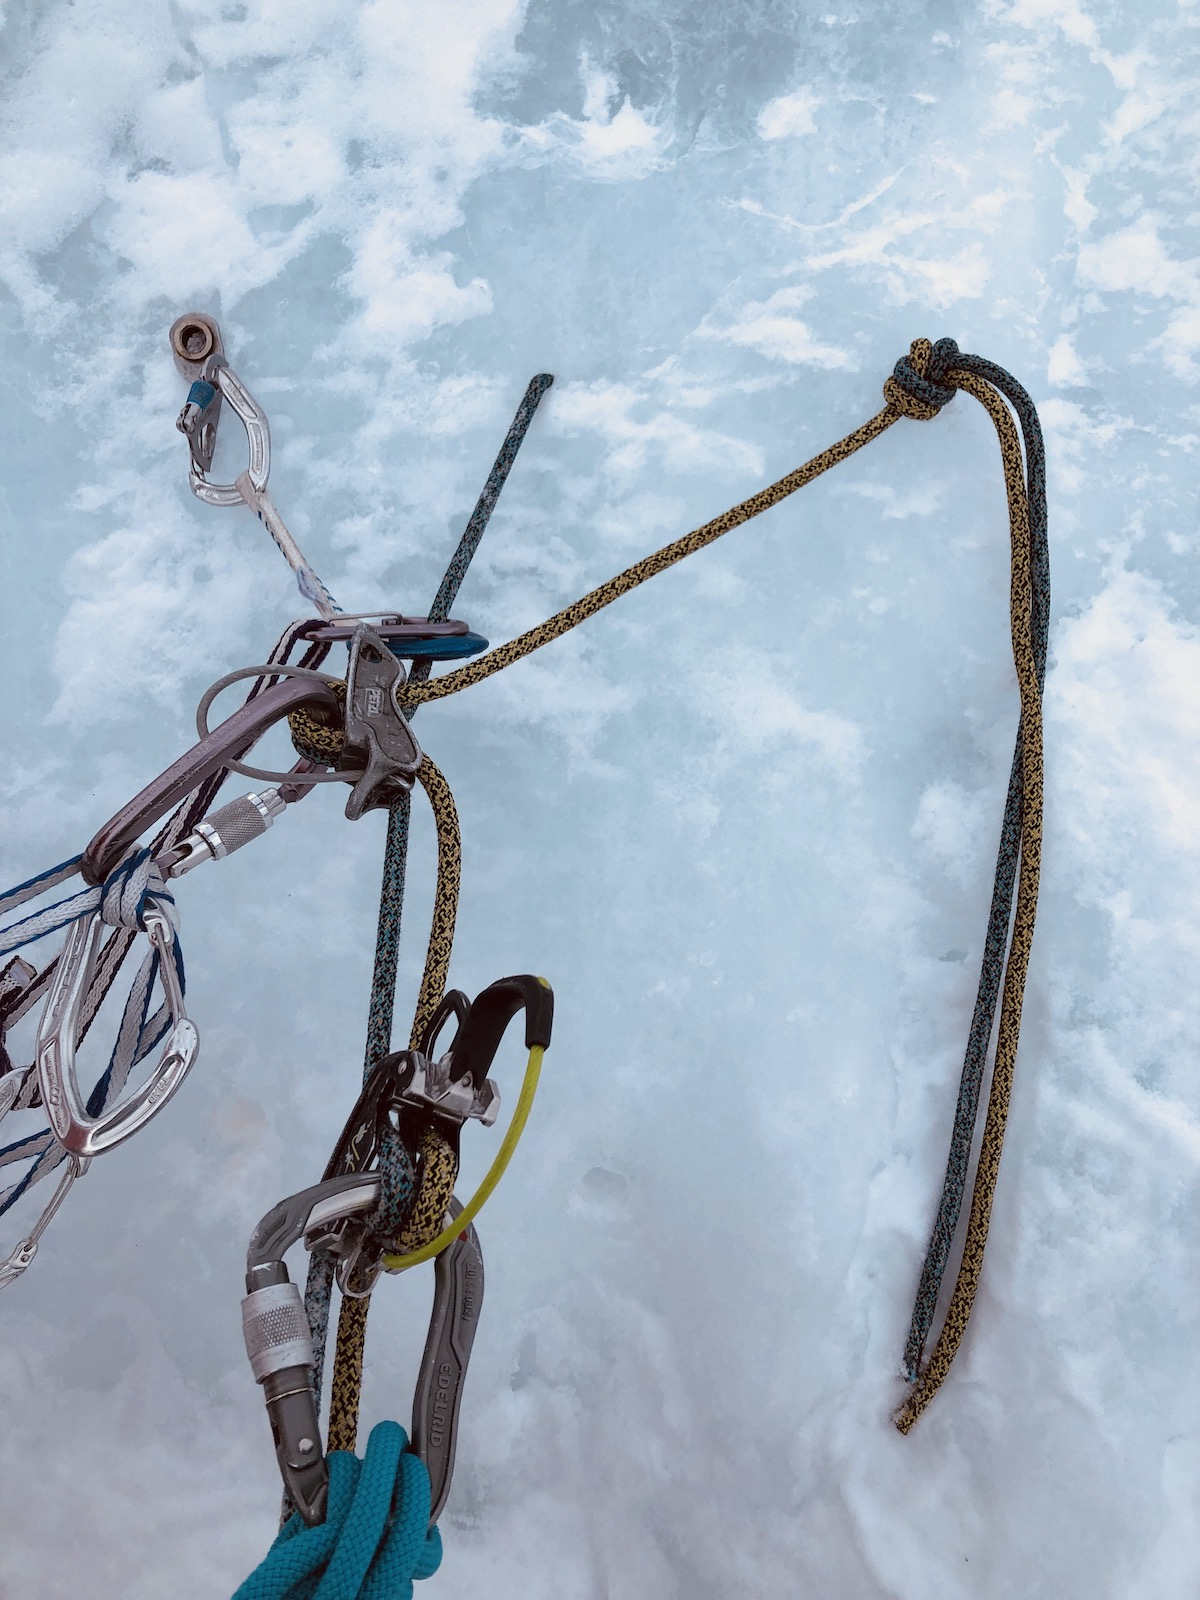 A naked V-thread with pre-rigged rappellers using the Starling Protect ropes. [Photo] Rob Coppolillo